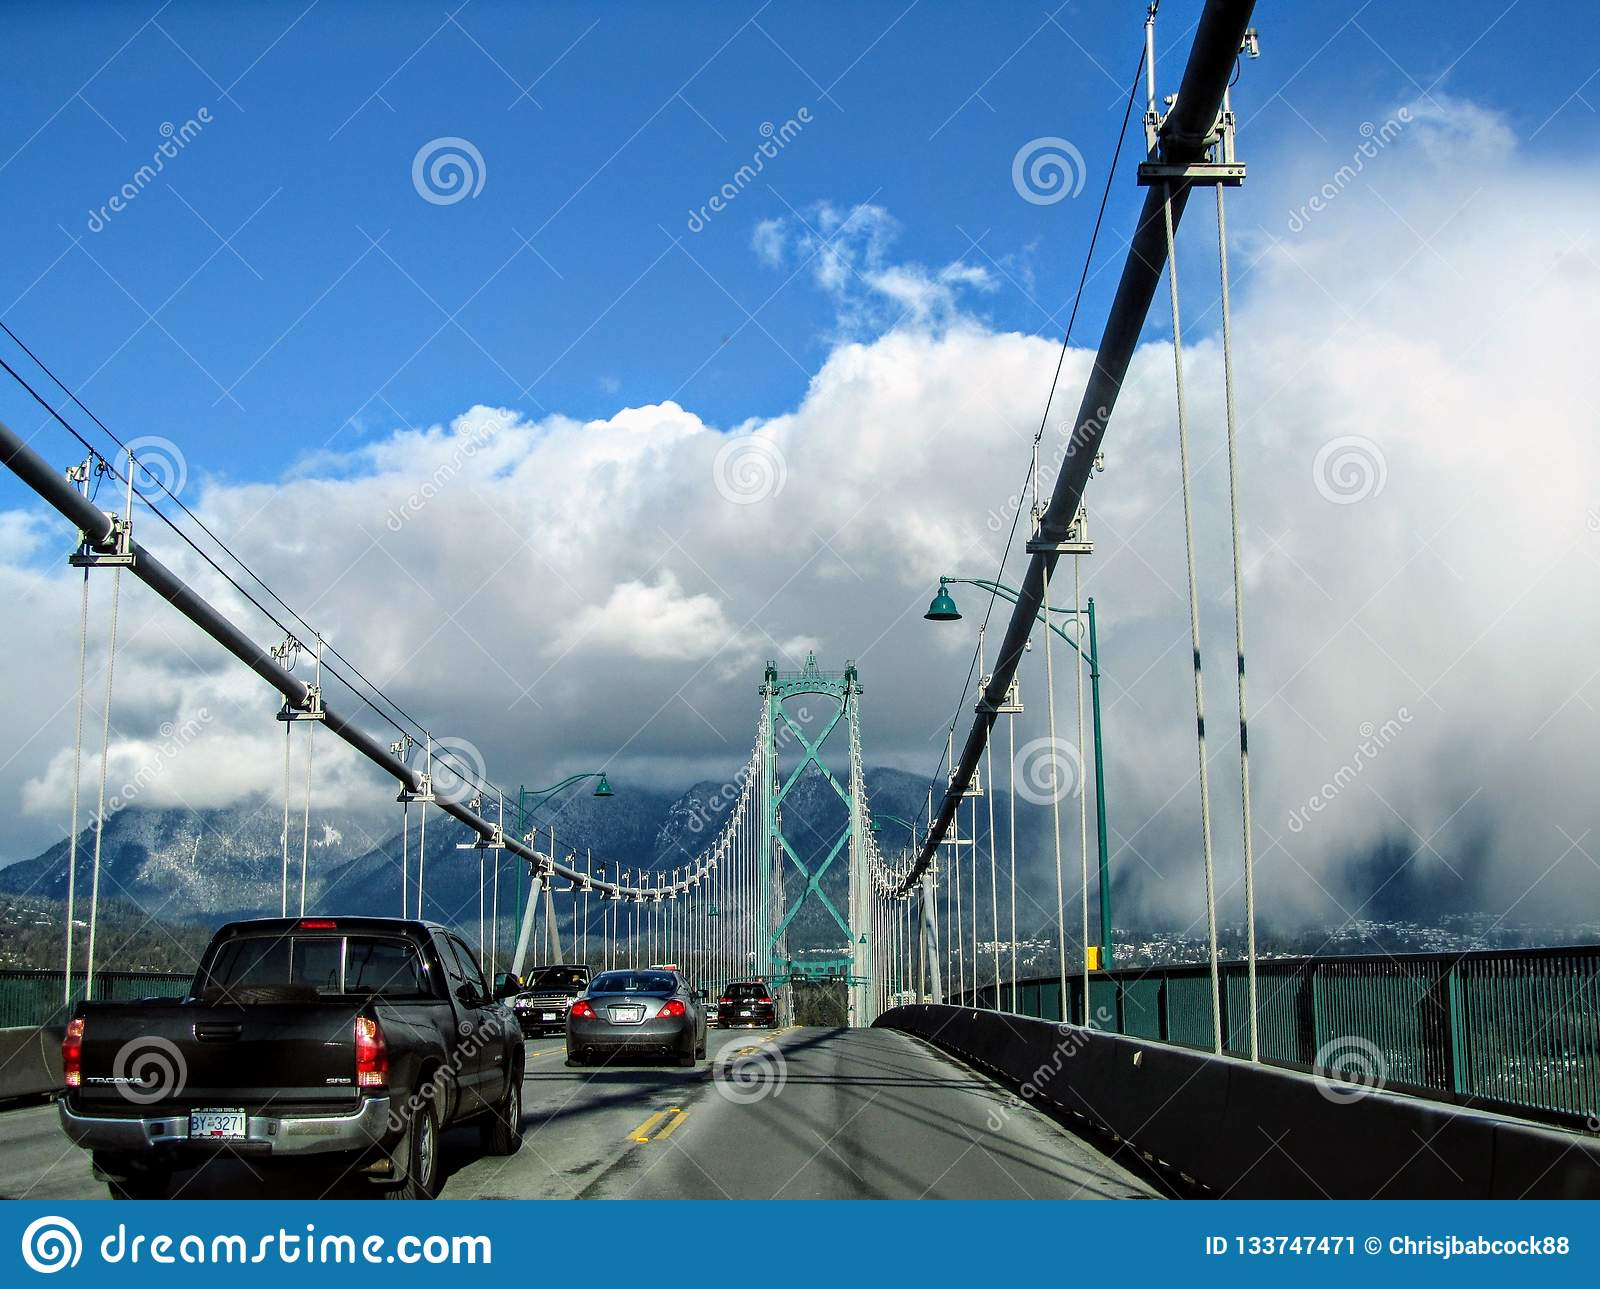 Cars driving across the Lions Gate Bridge, which crosses from Stanley Park to North Vancouver.